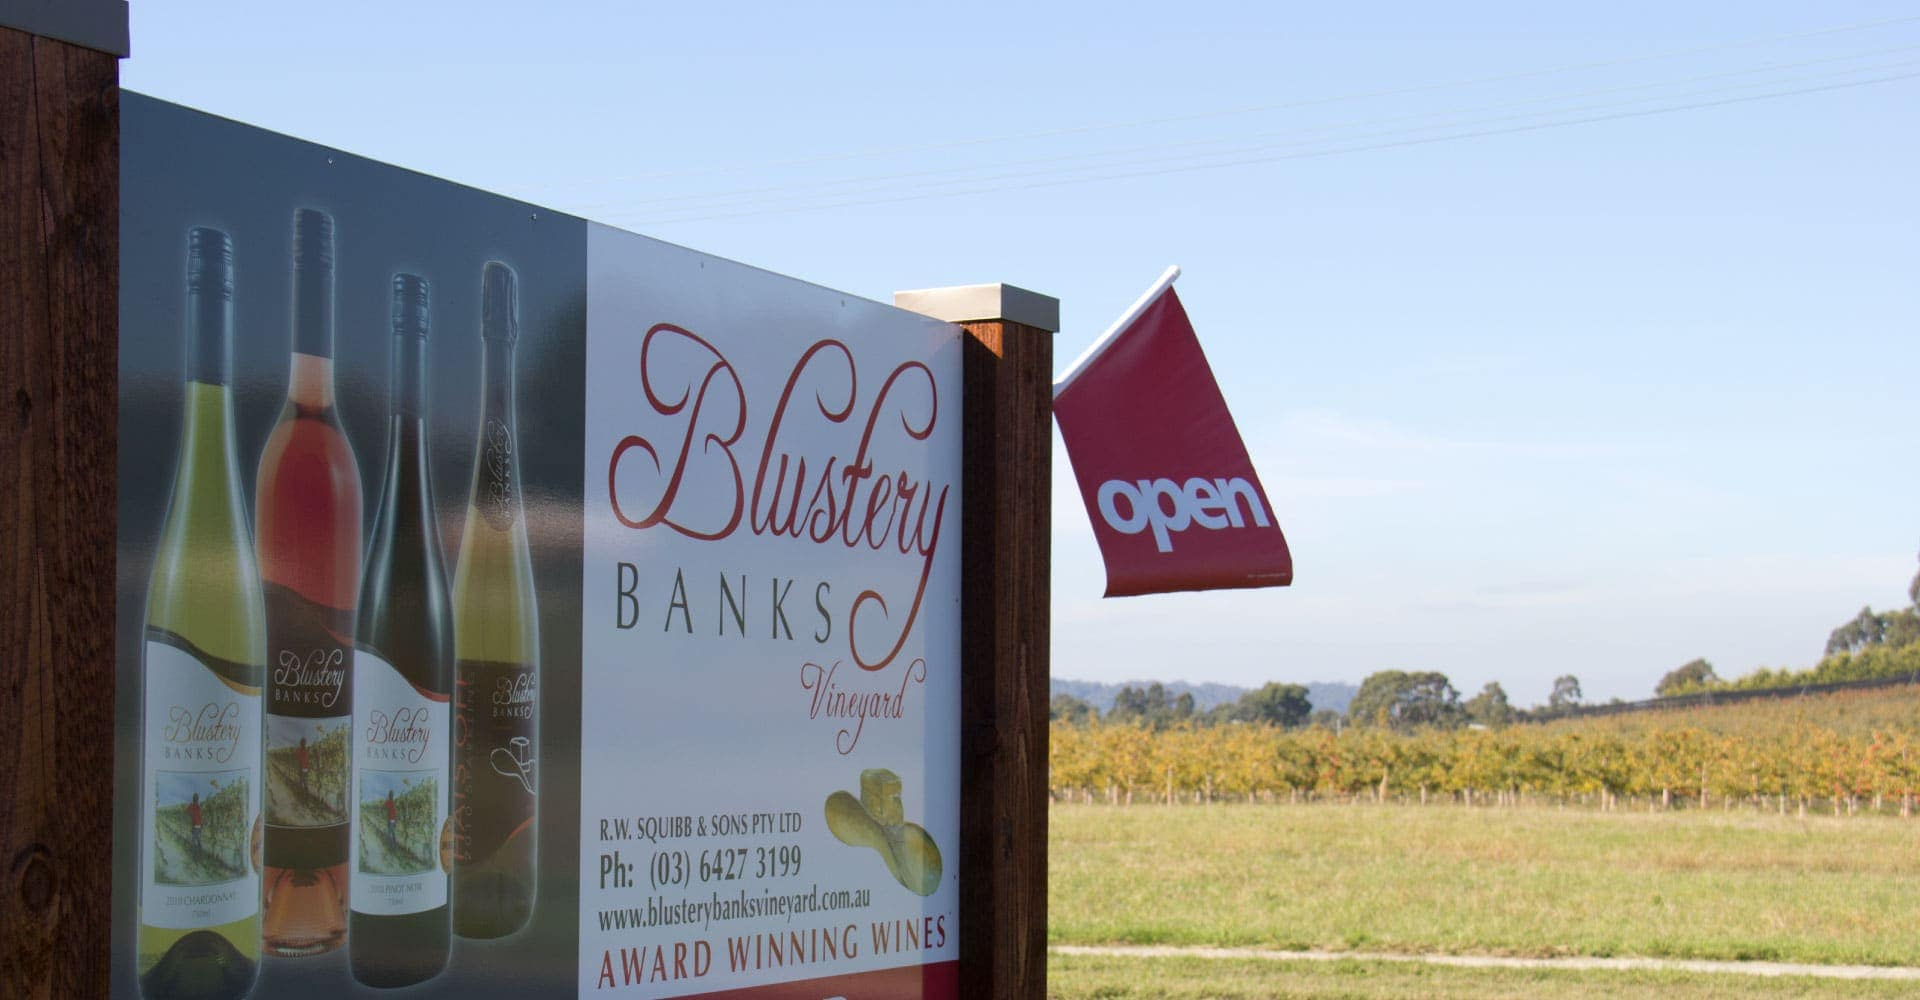 Blustery Banks Vineyard EntrySign